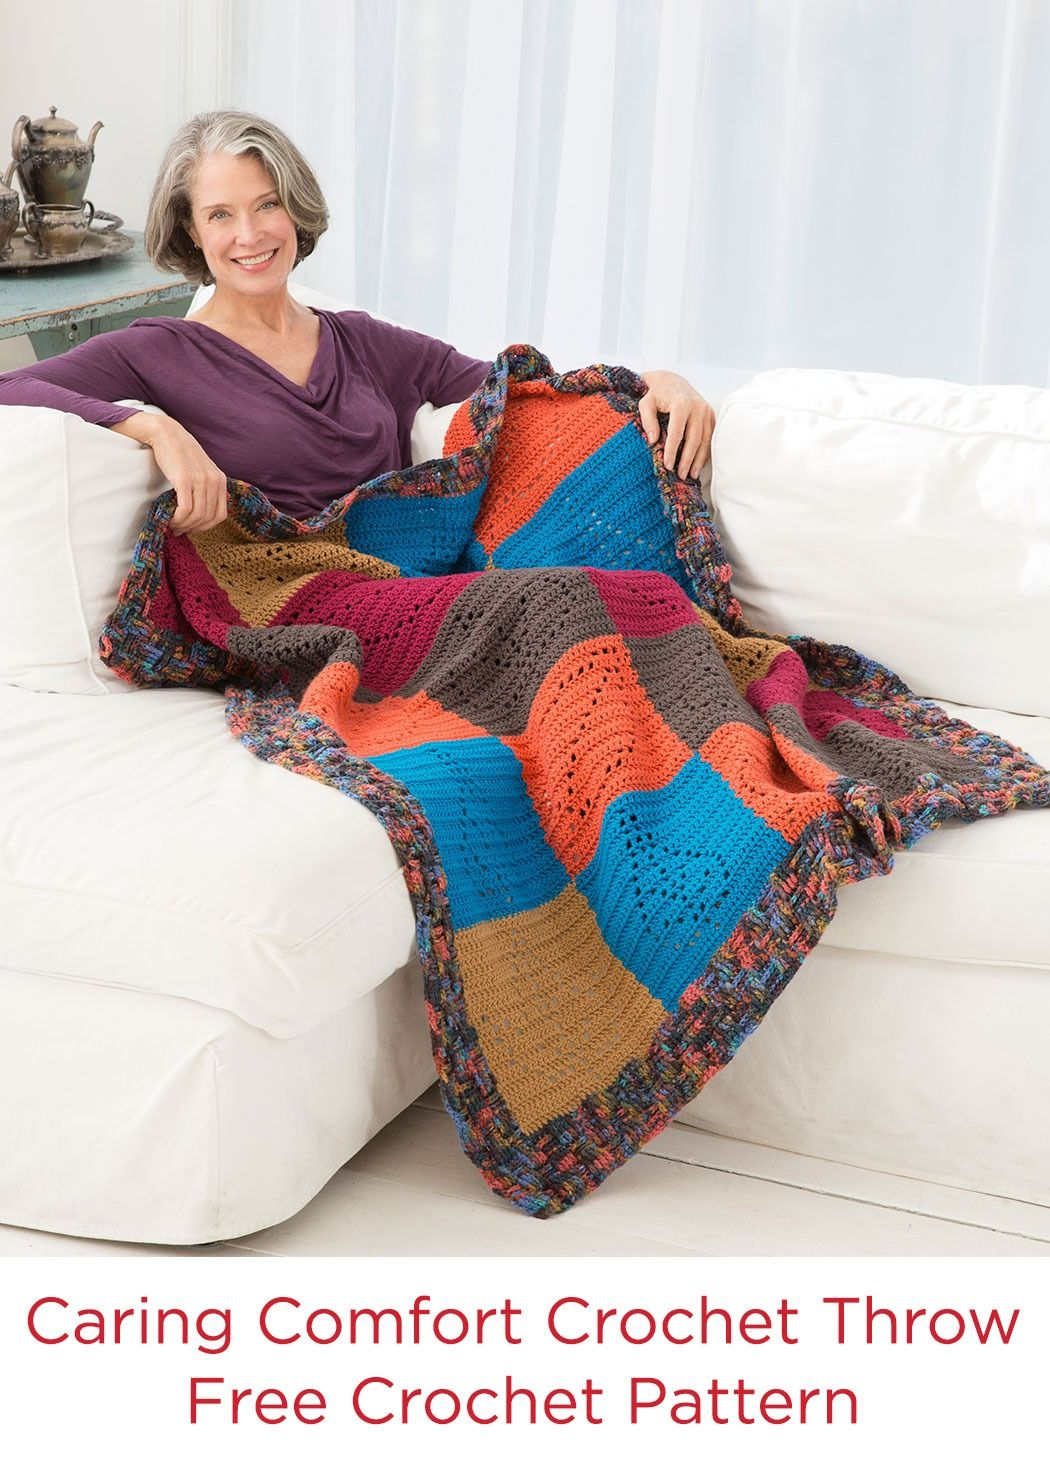 Caring Comfort Crochet Throw Free Crochet Pattern in Red Heart Super ...